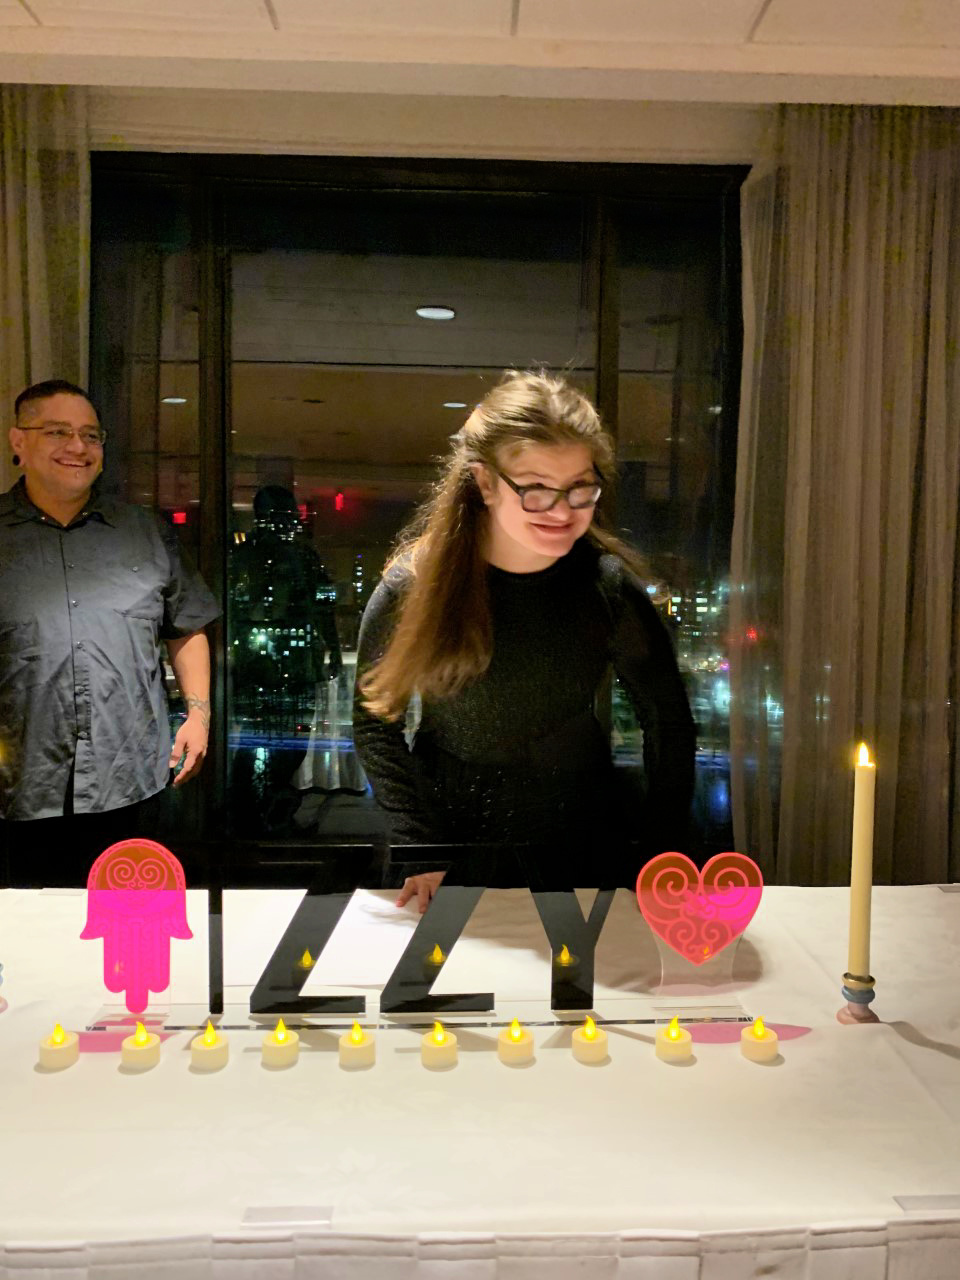 Izzy at her candle lighting ceremony (Courtesy photo)